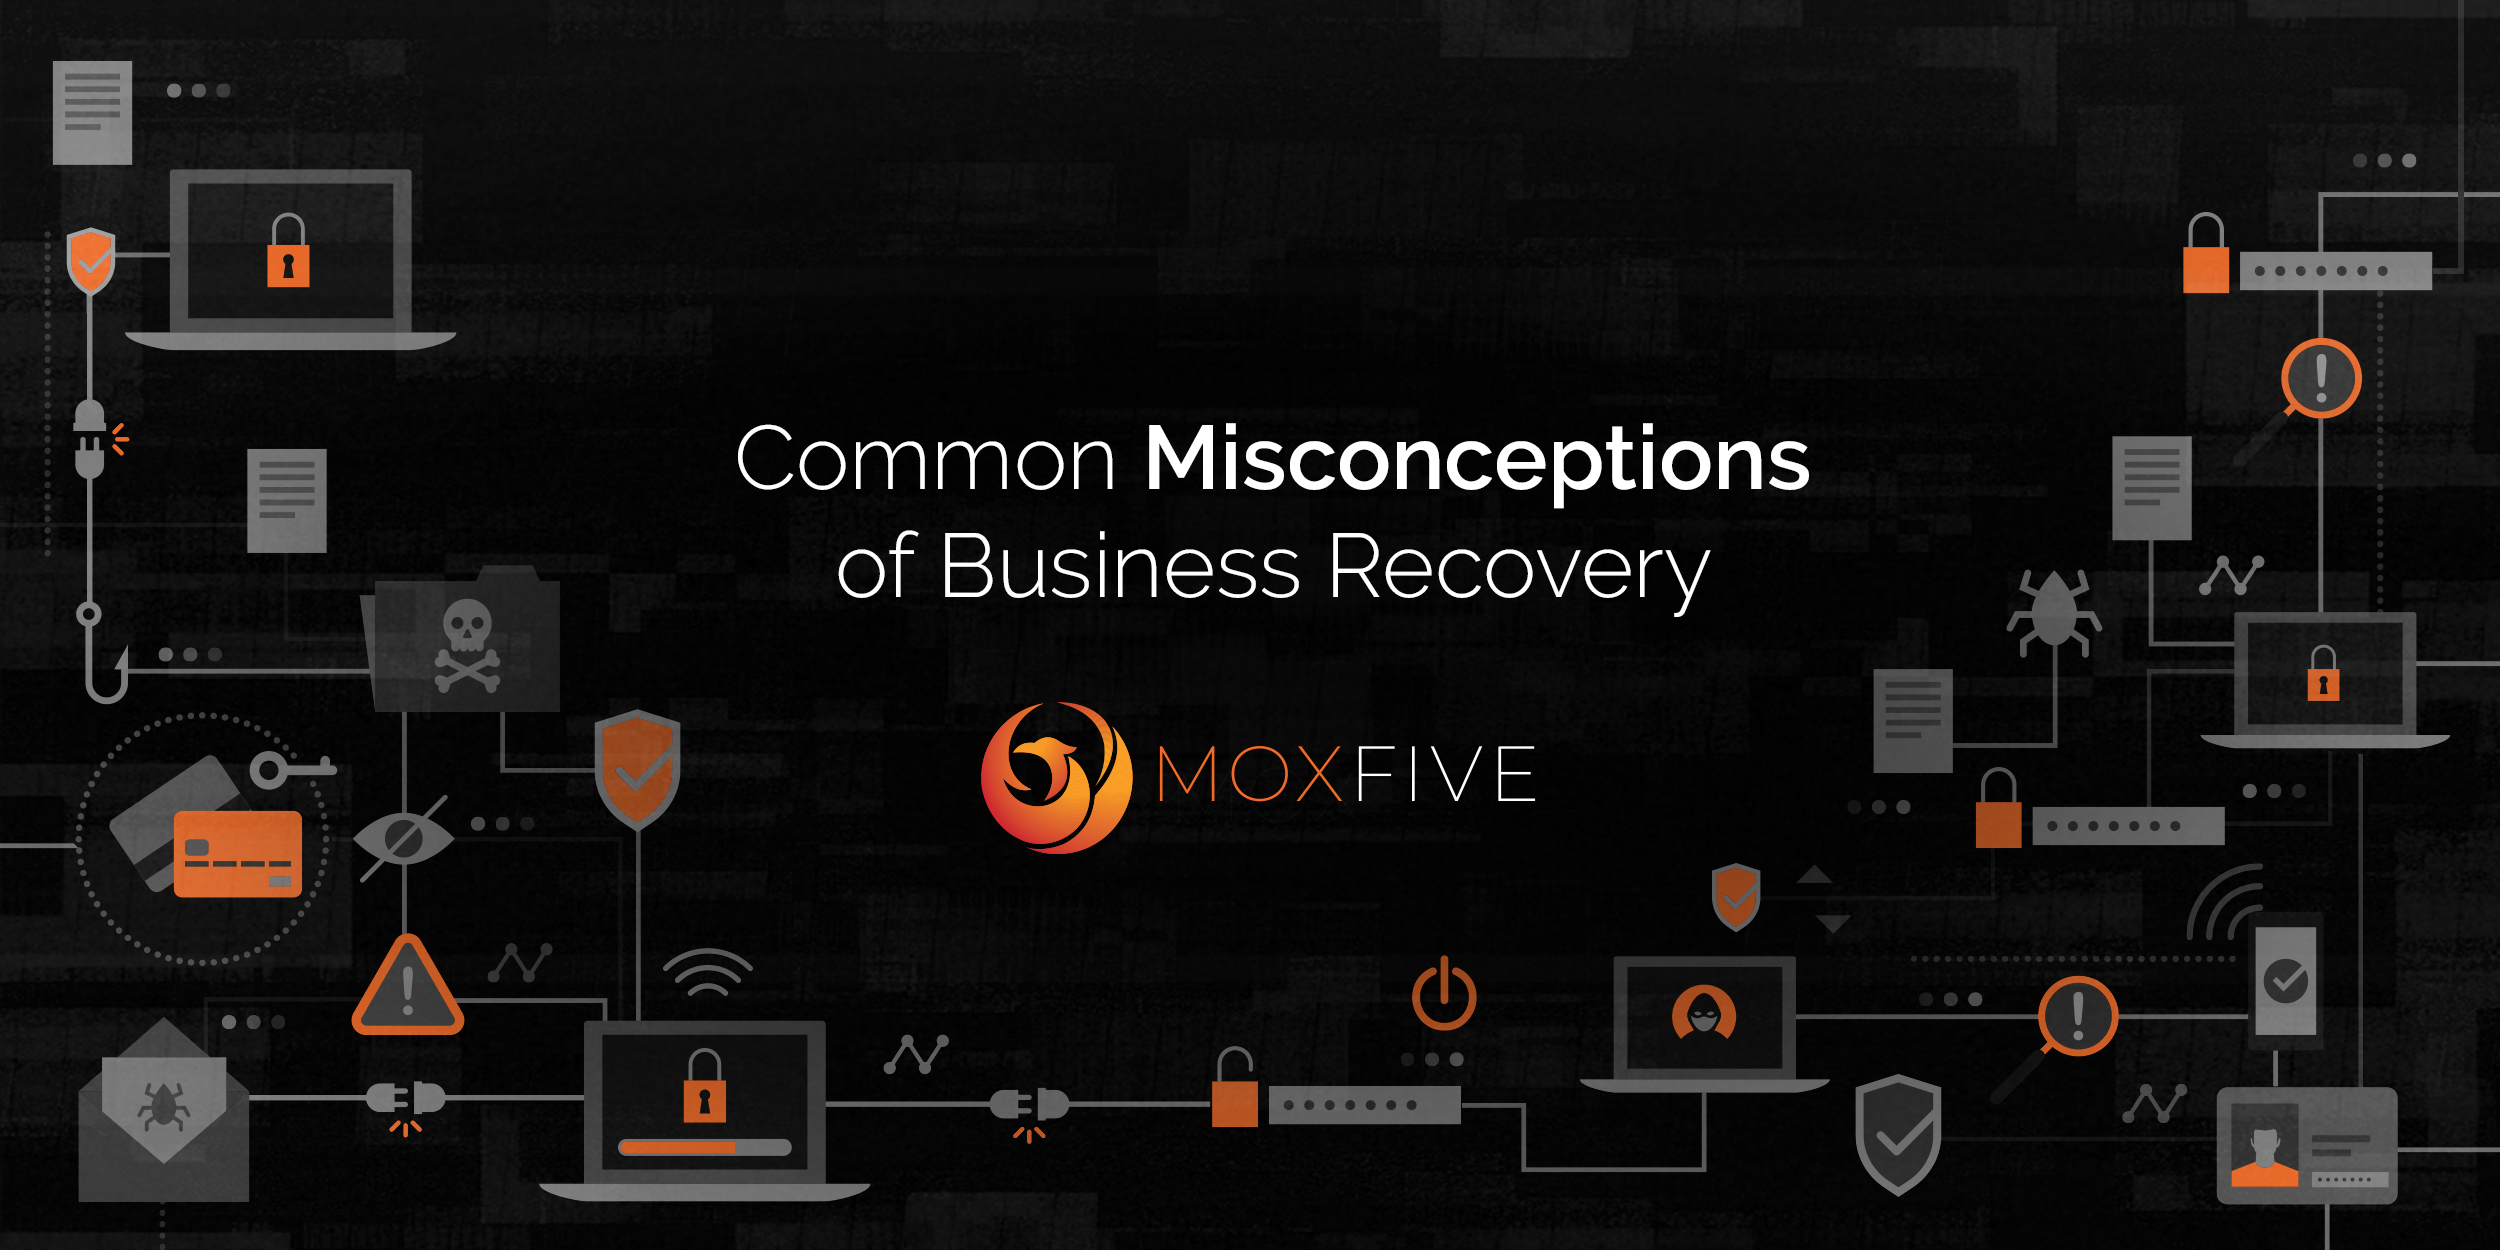 Common Misconceptions of Business Recovery